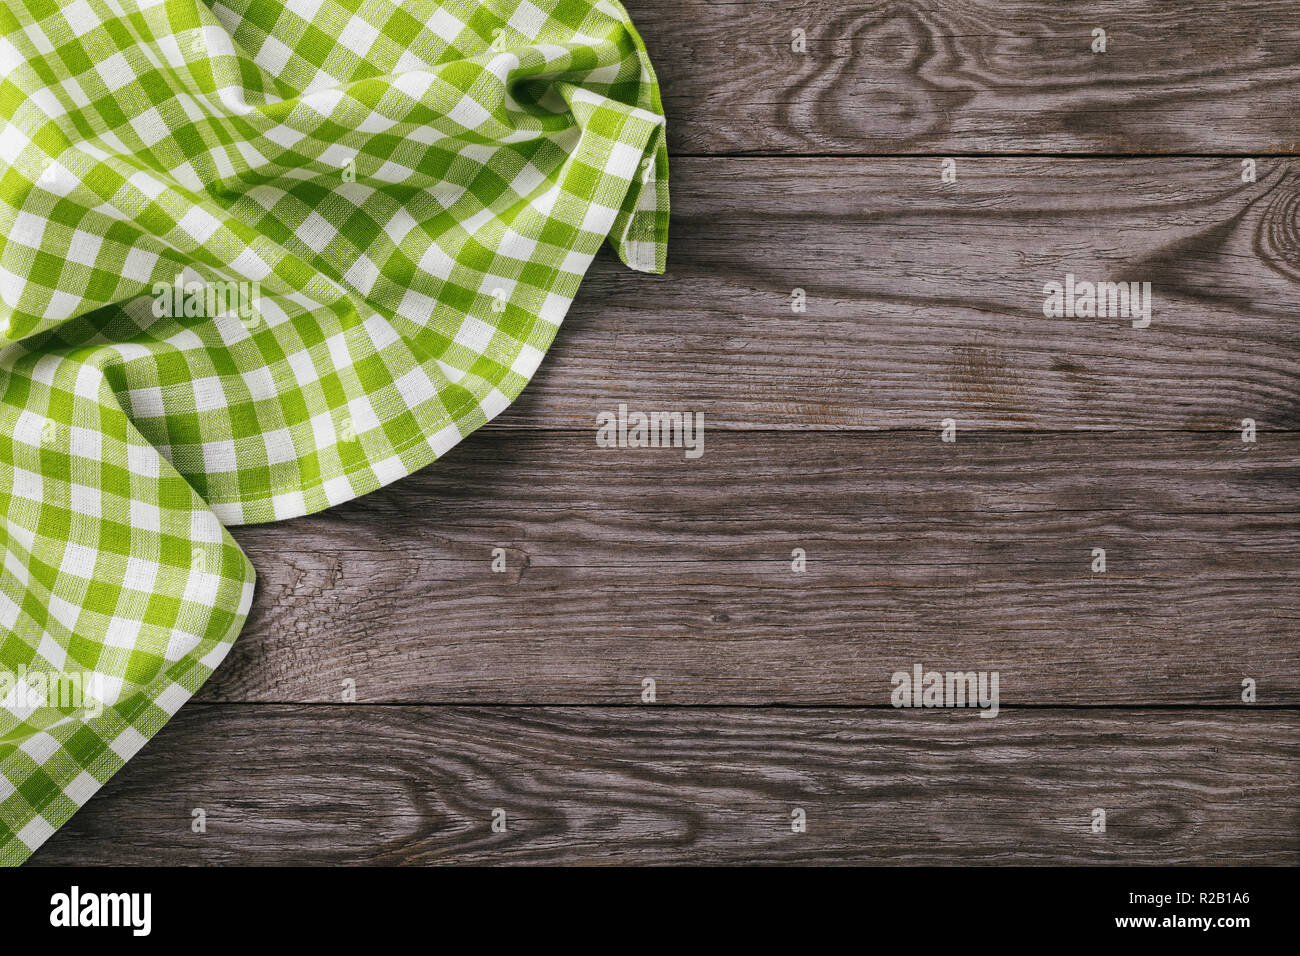 Top view on a multi-colored napkin on the left side of a wooden table with copy space - Stock Image